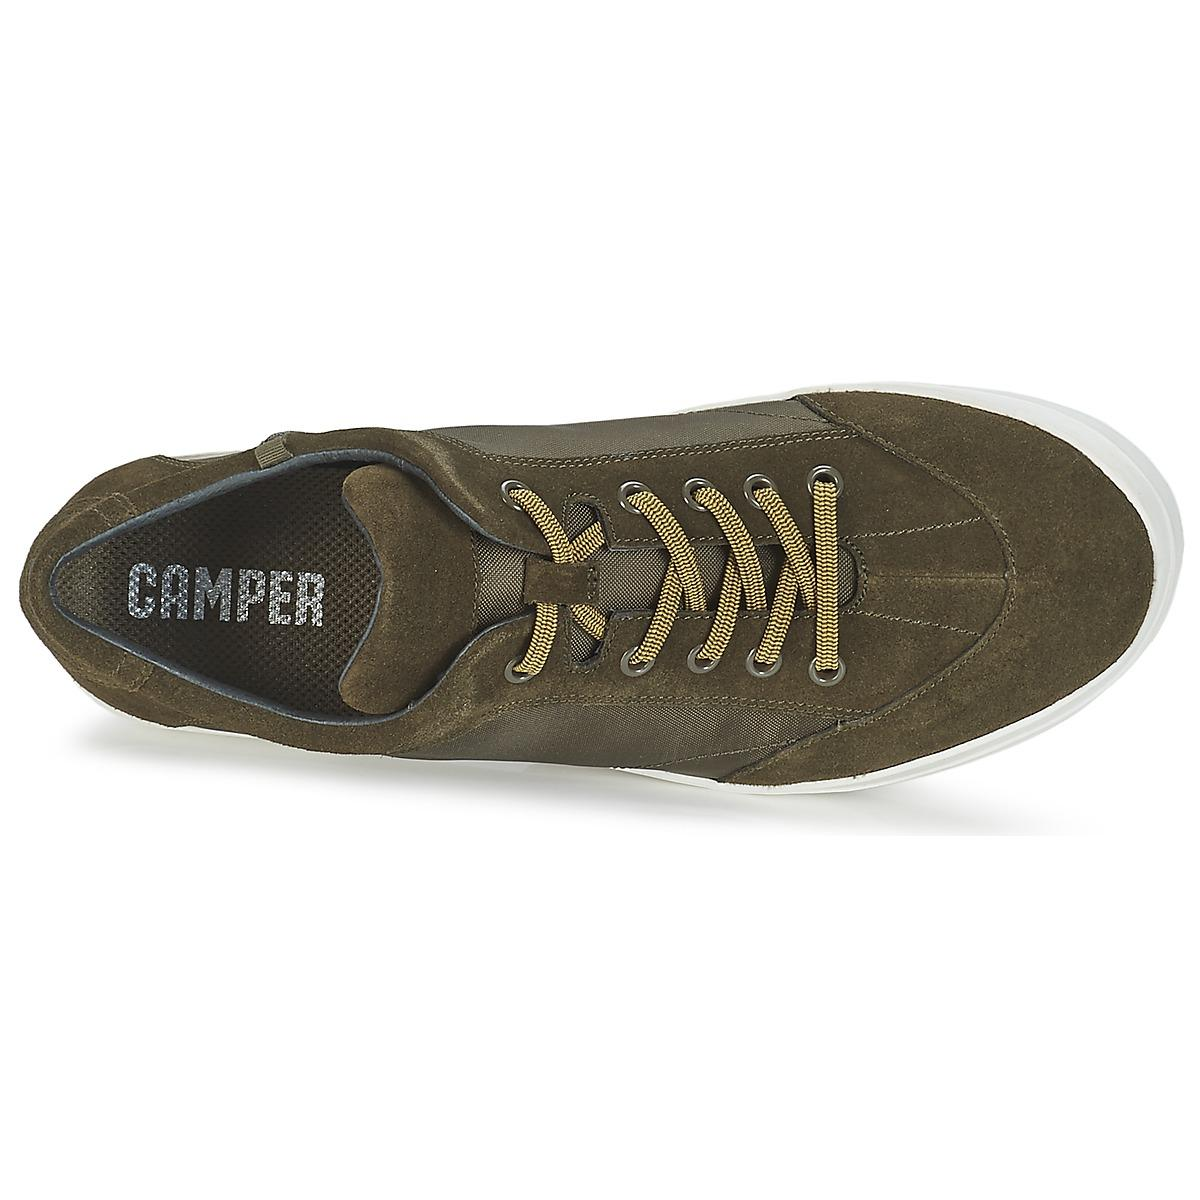 Camper Leather Peu Slastic Shoes (trainers) in Green for Men